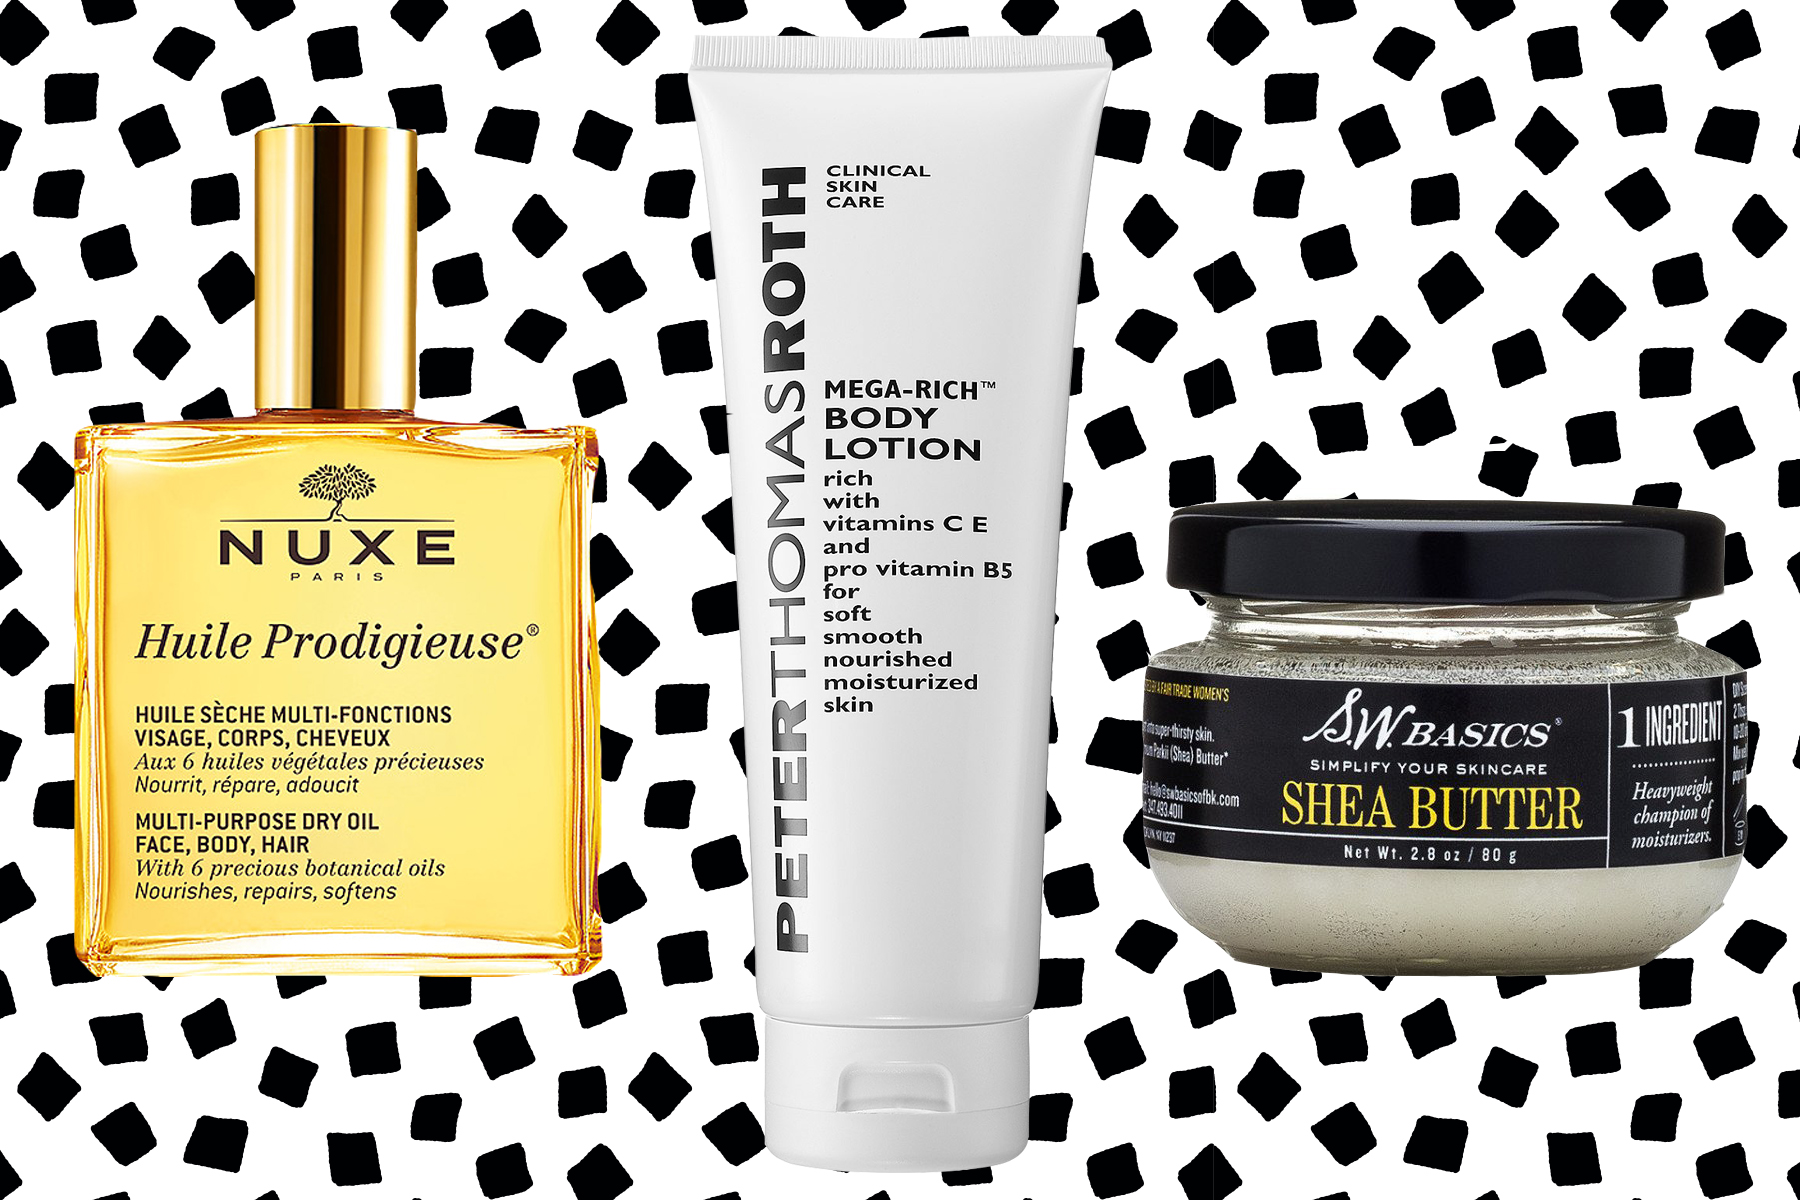 Nuxe, Peter Thomas Roth, S.W. Basics oils and lotions.